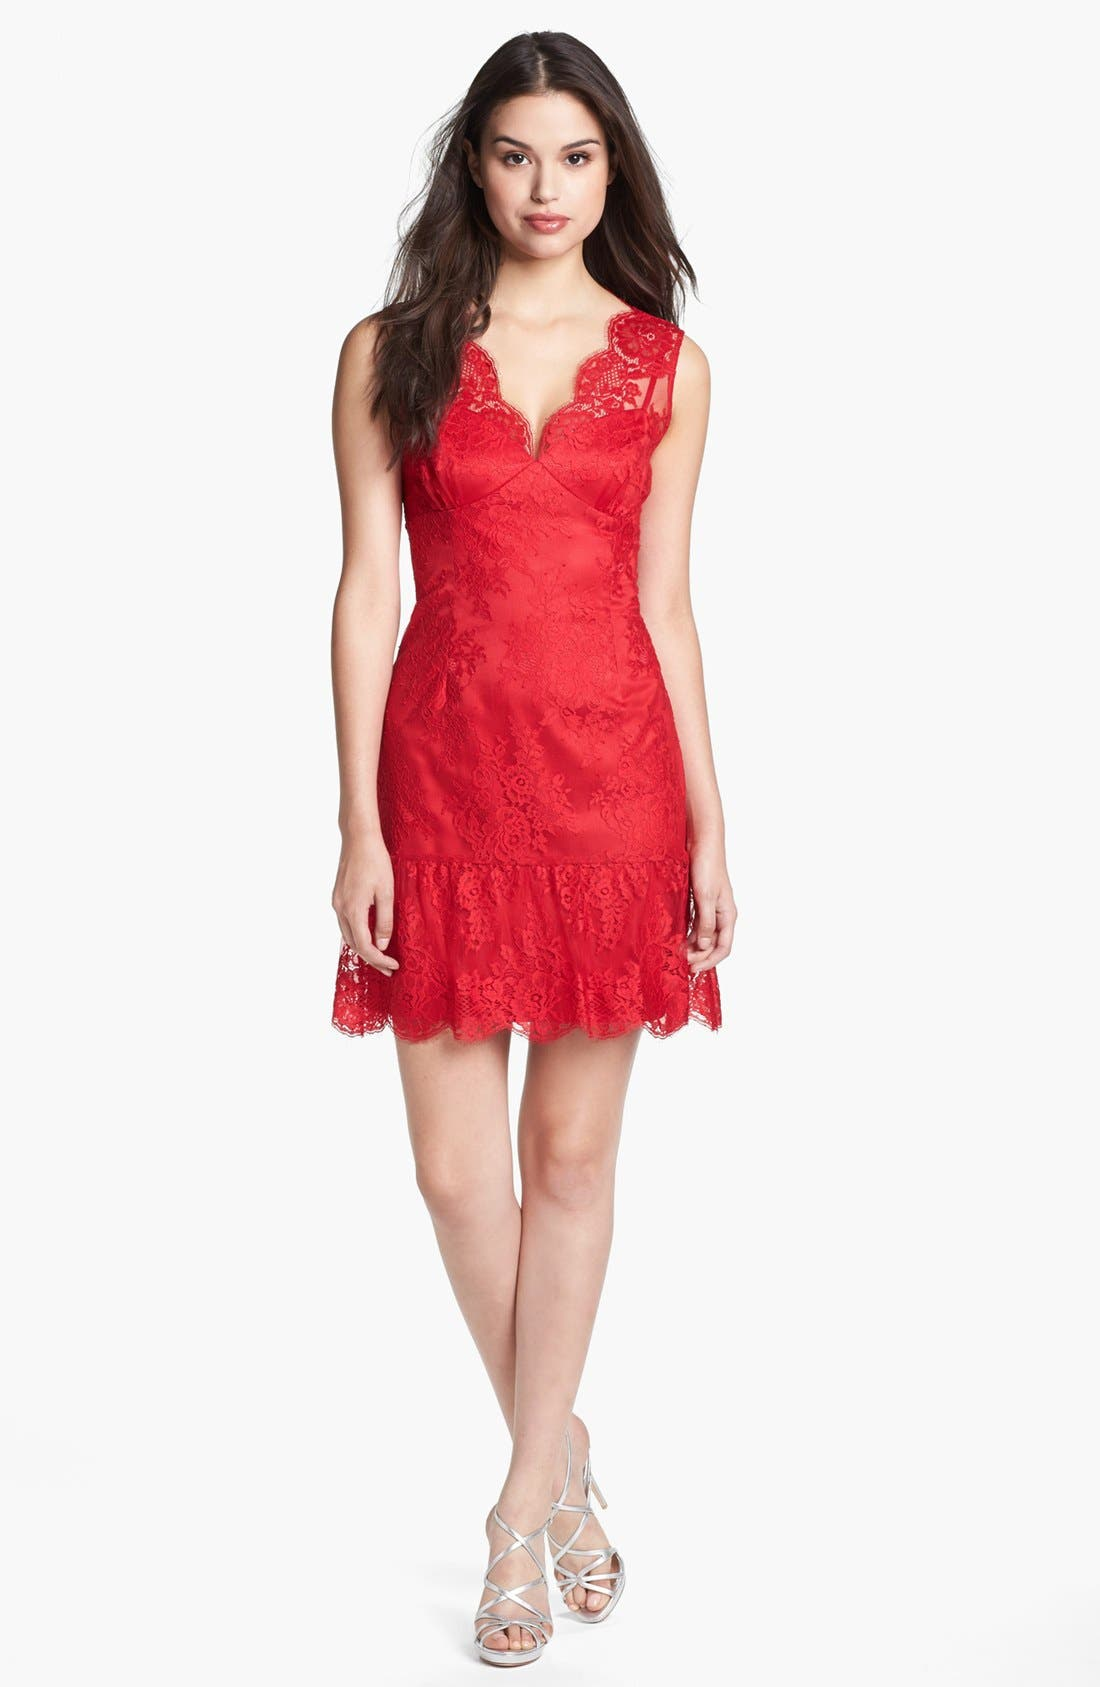 Alternate Image 1 Selected - Adrianna Papell Chantilly Lace Dress